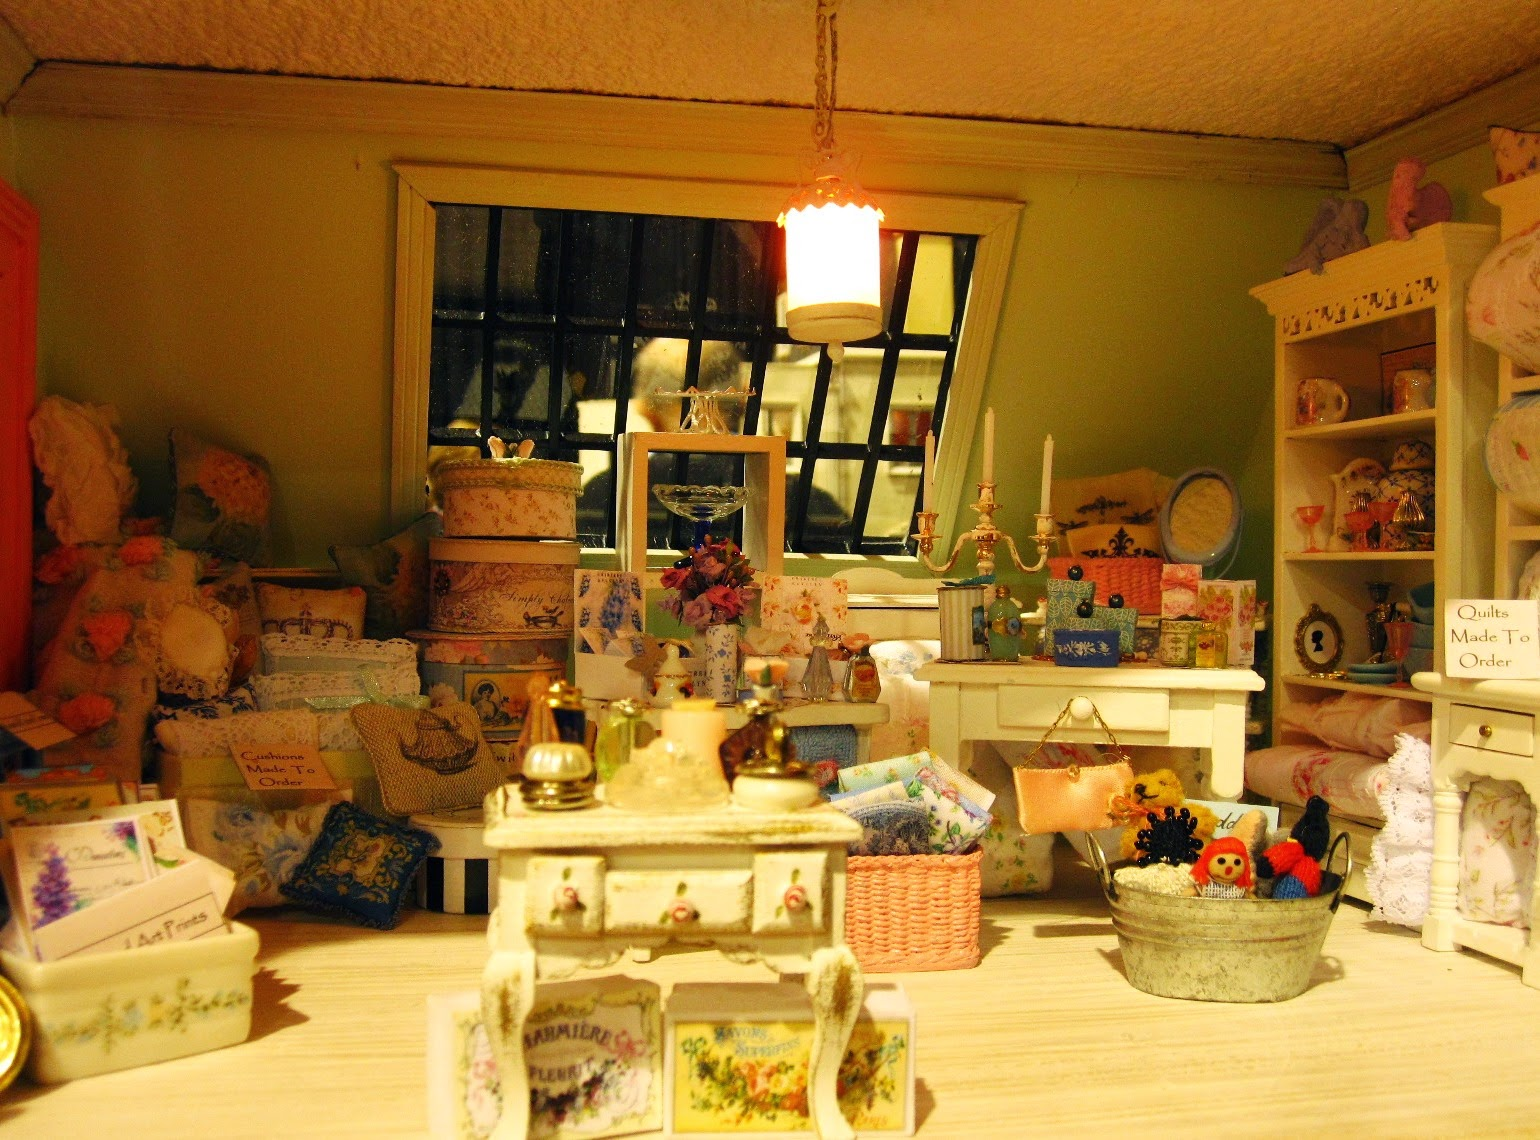 Third floor of a modern miniature shabby chic shop, with a display of soft furnishings and furniture.